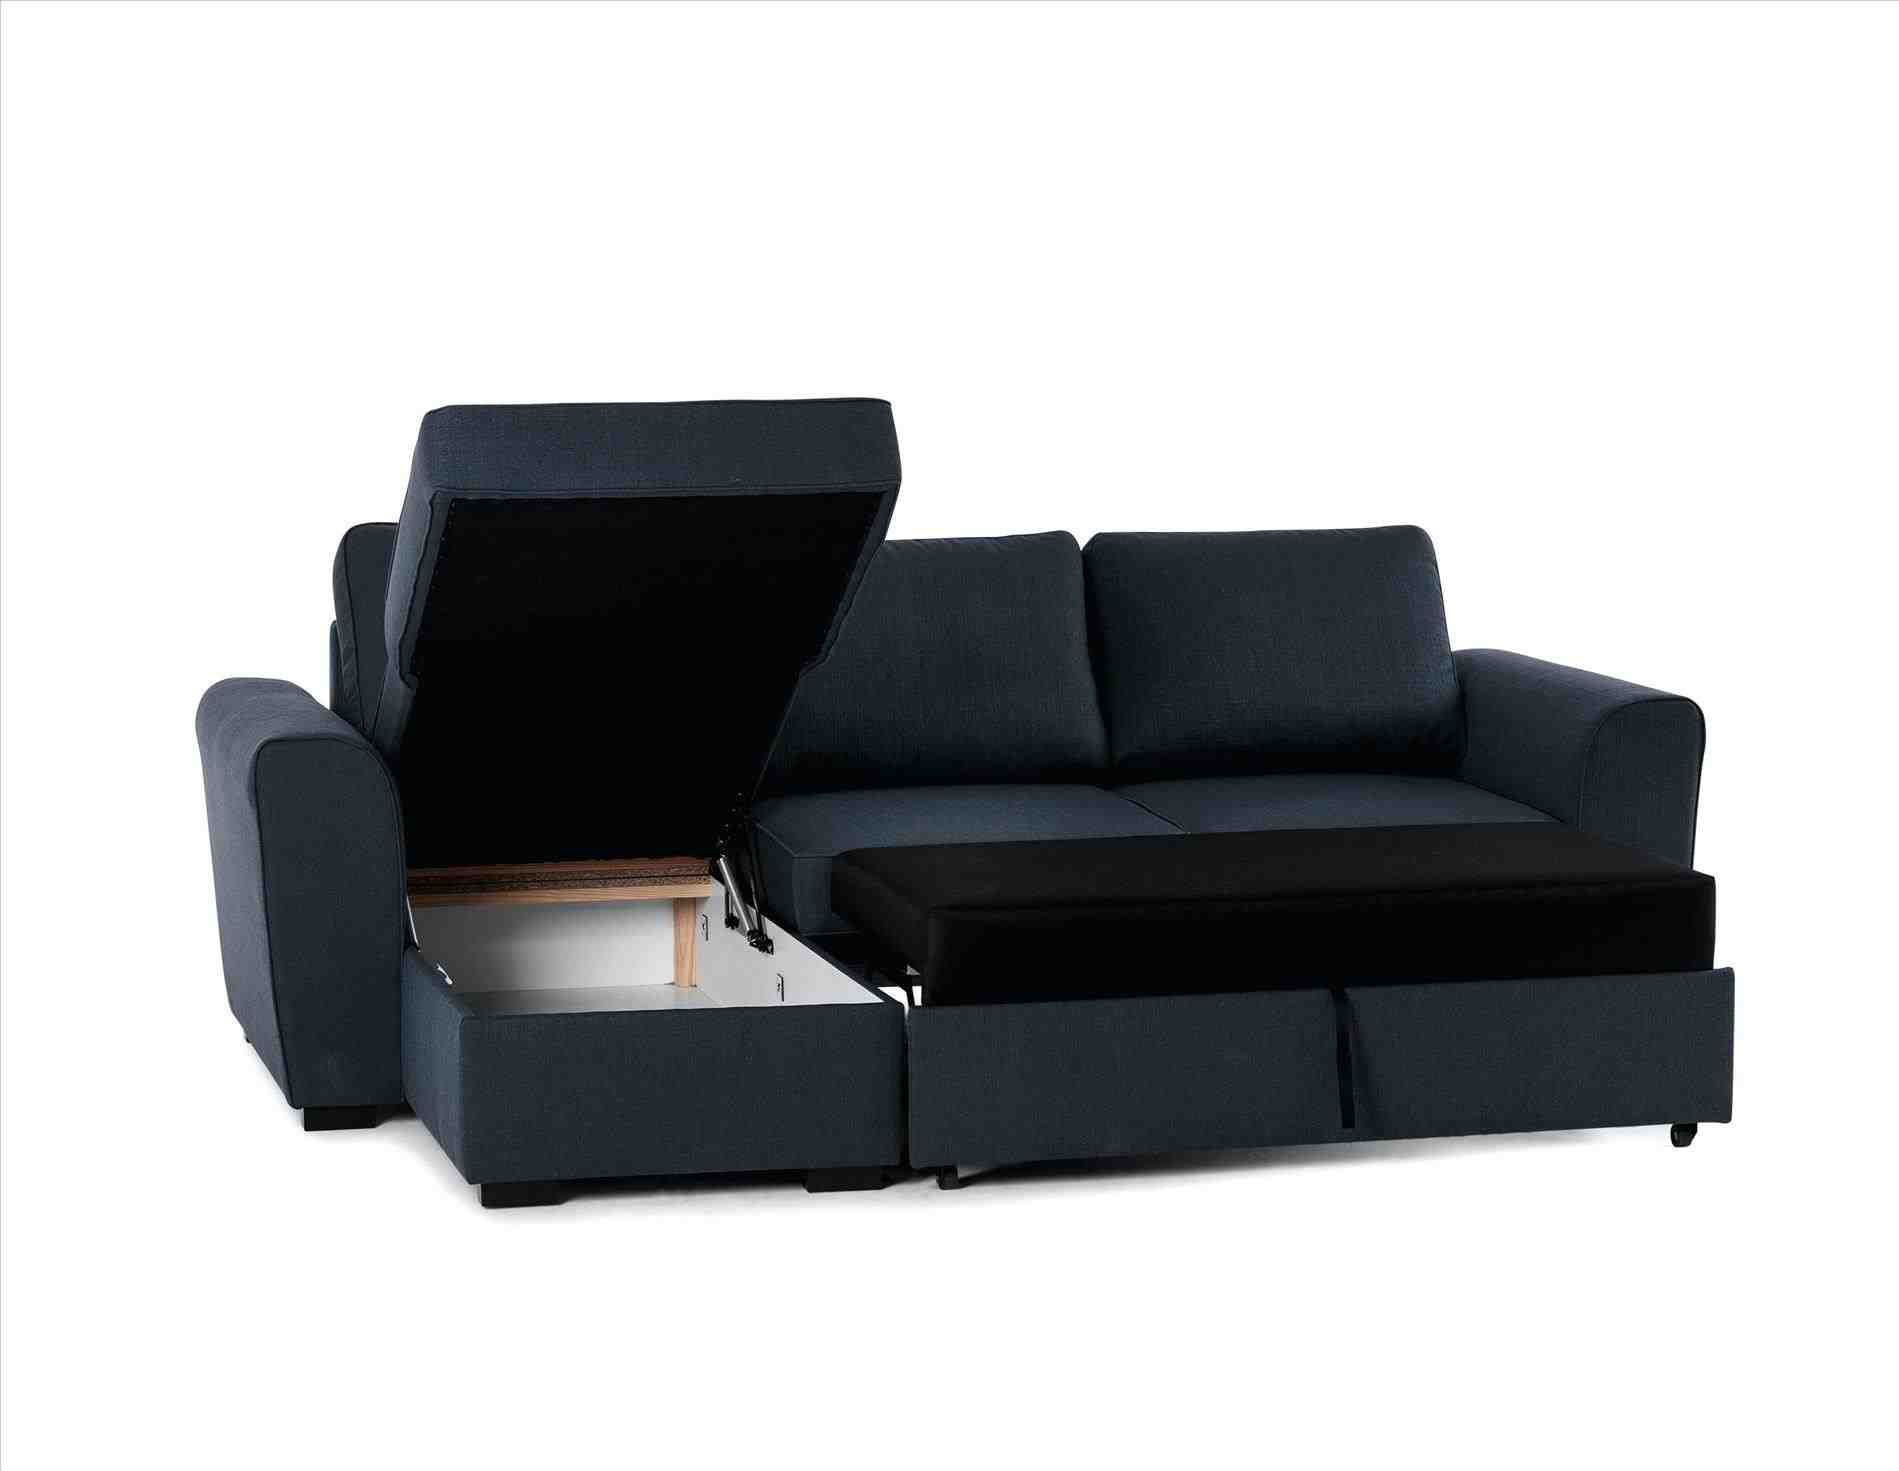 Cheap Sectionals Dallas Tx - charcoal gray sofa grey sectional couch ...